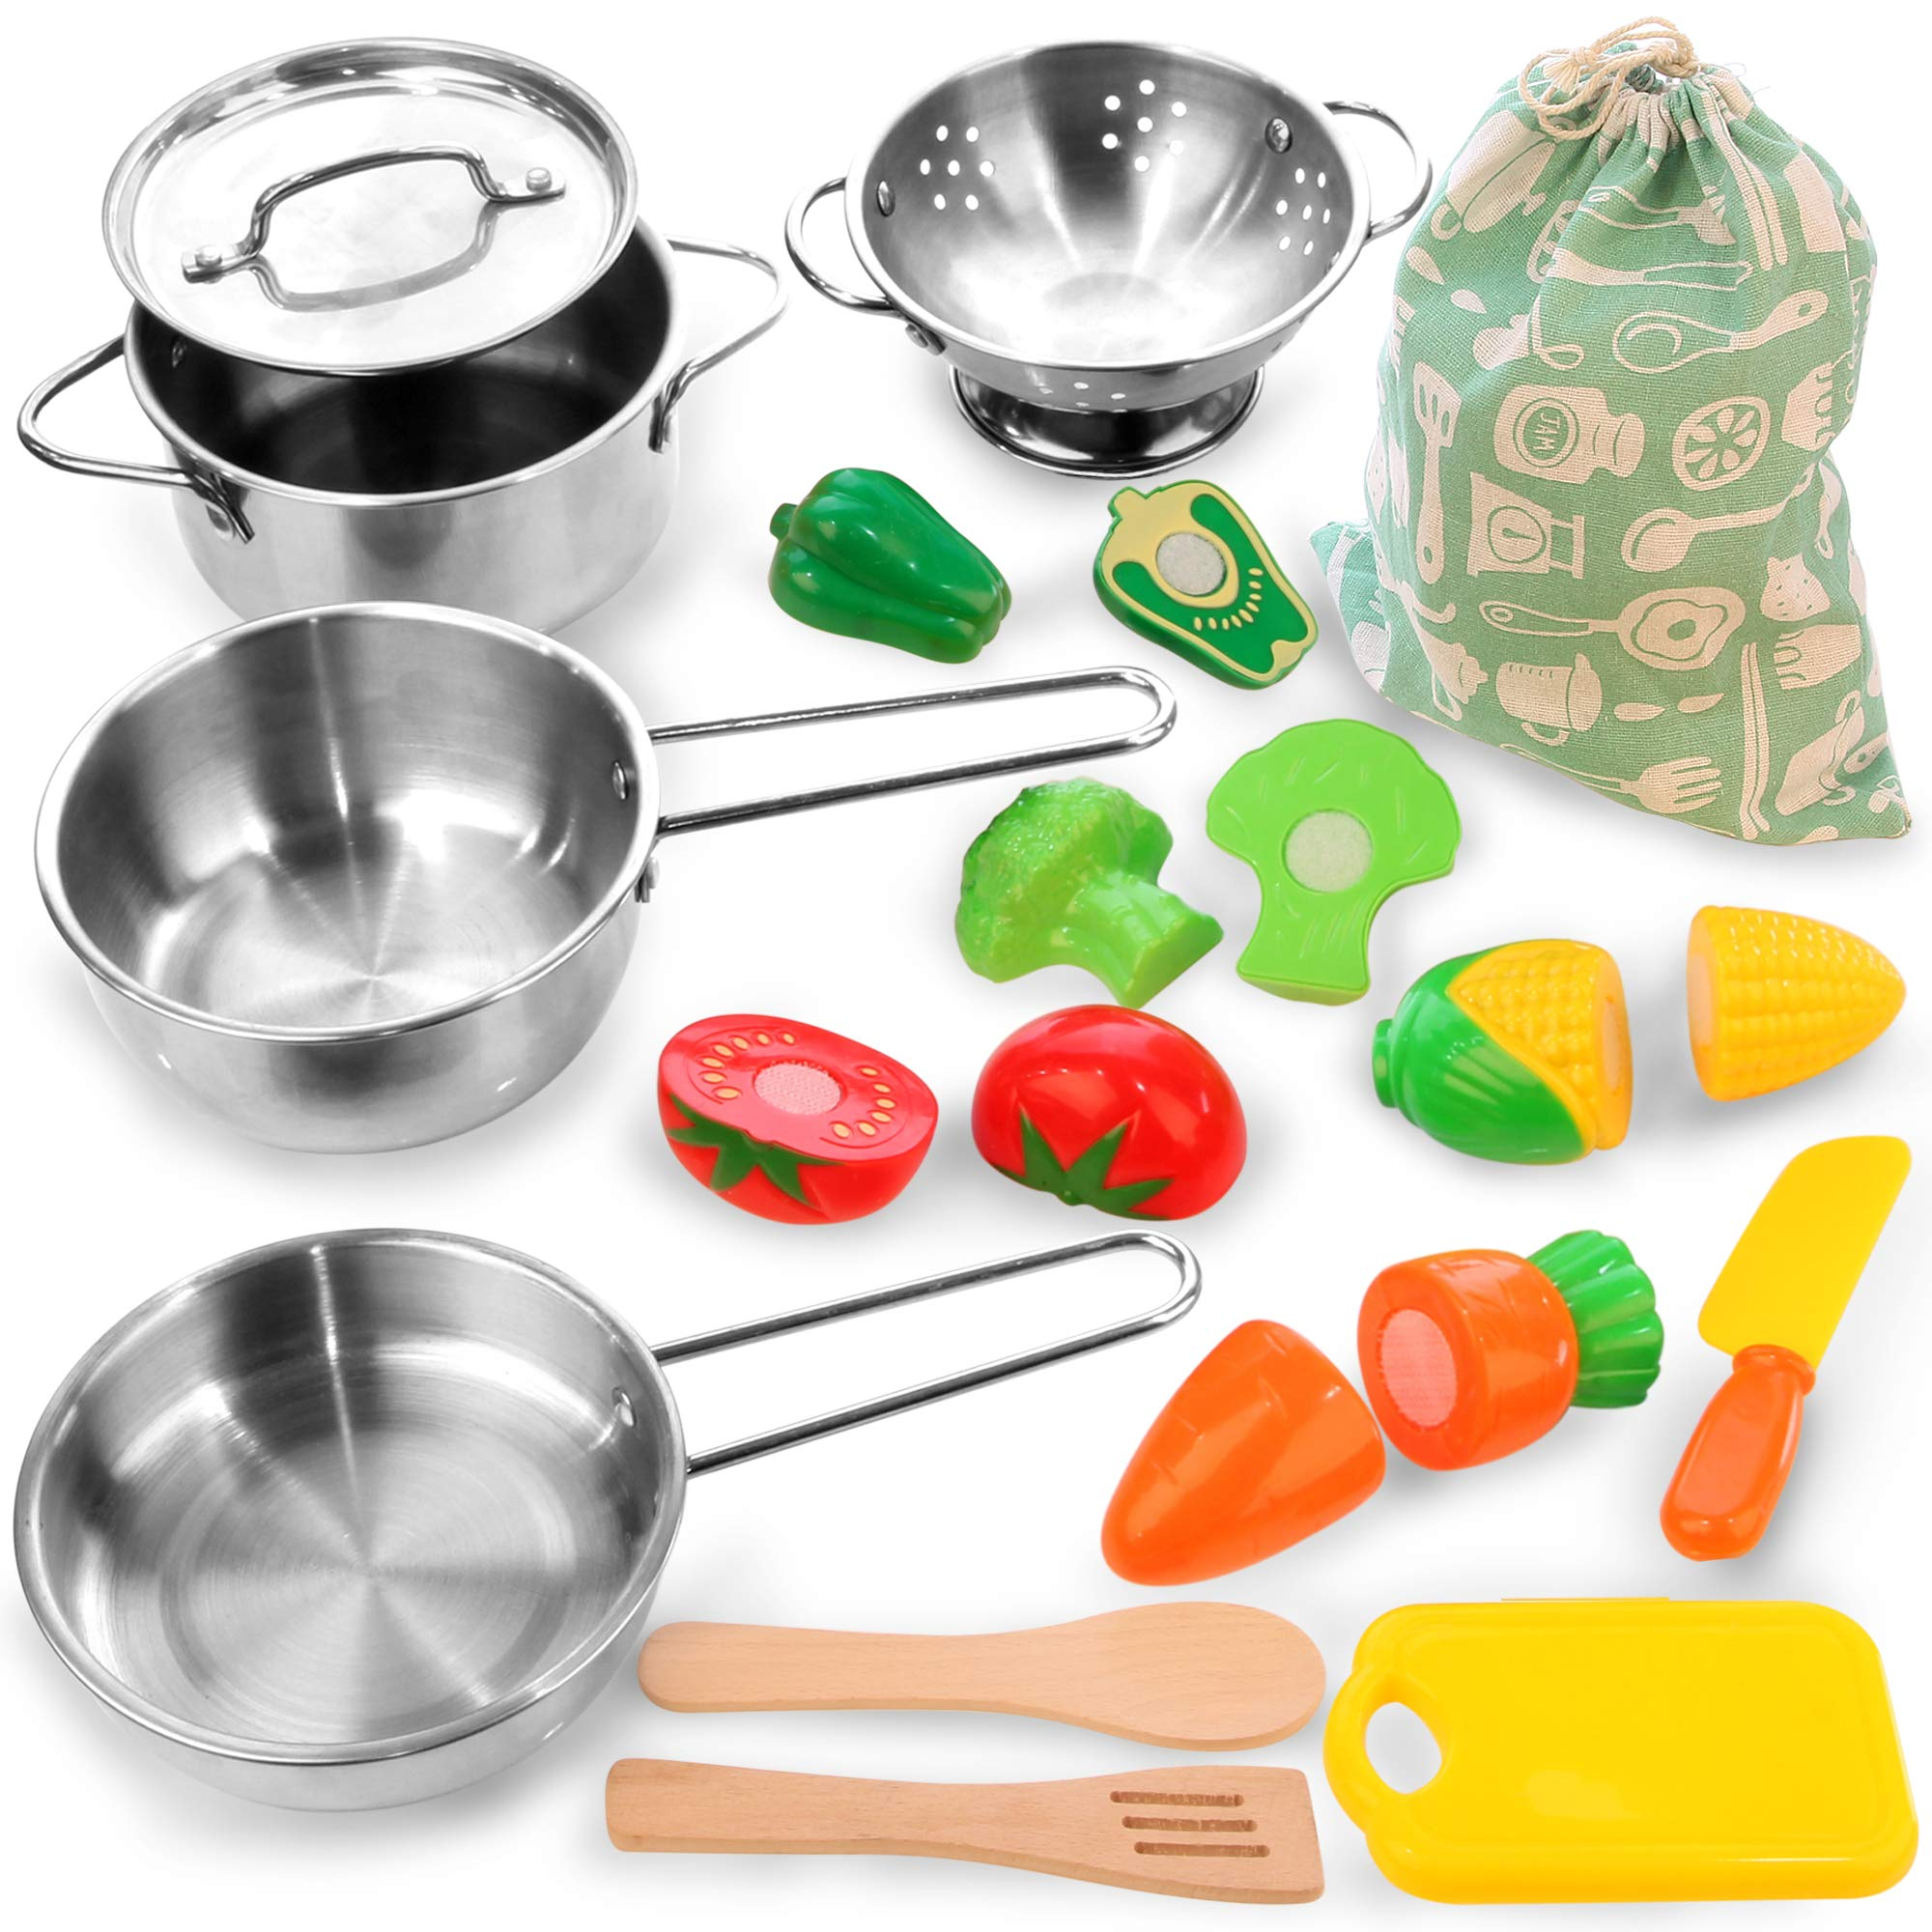 KRATO Kids Pots and Pans Toys with Cutting Play Food - Kitchen Playset Pretend Cookware Big Stainless Steel Cooking Utensils Development for Toddlers & Children Boys Girls Ages 3 Years and up by KRATO